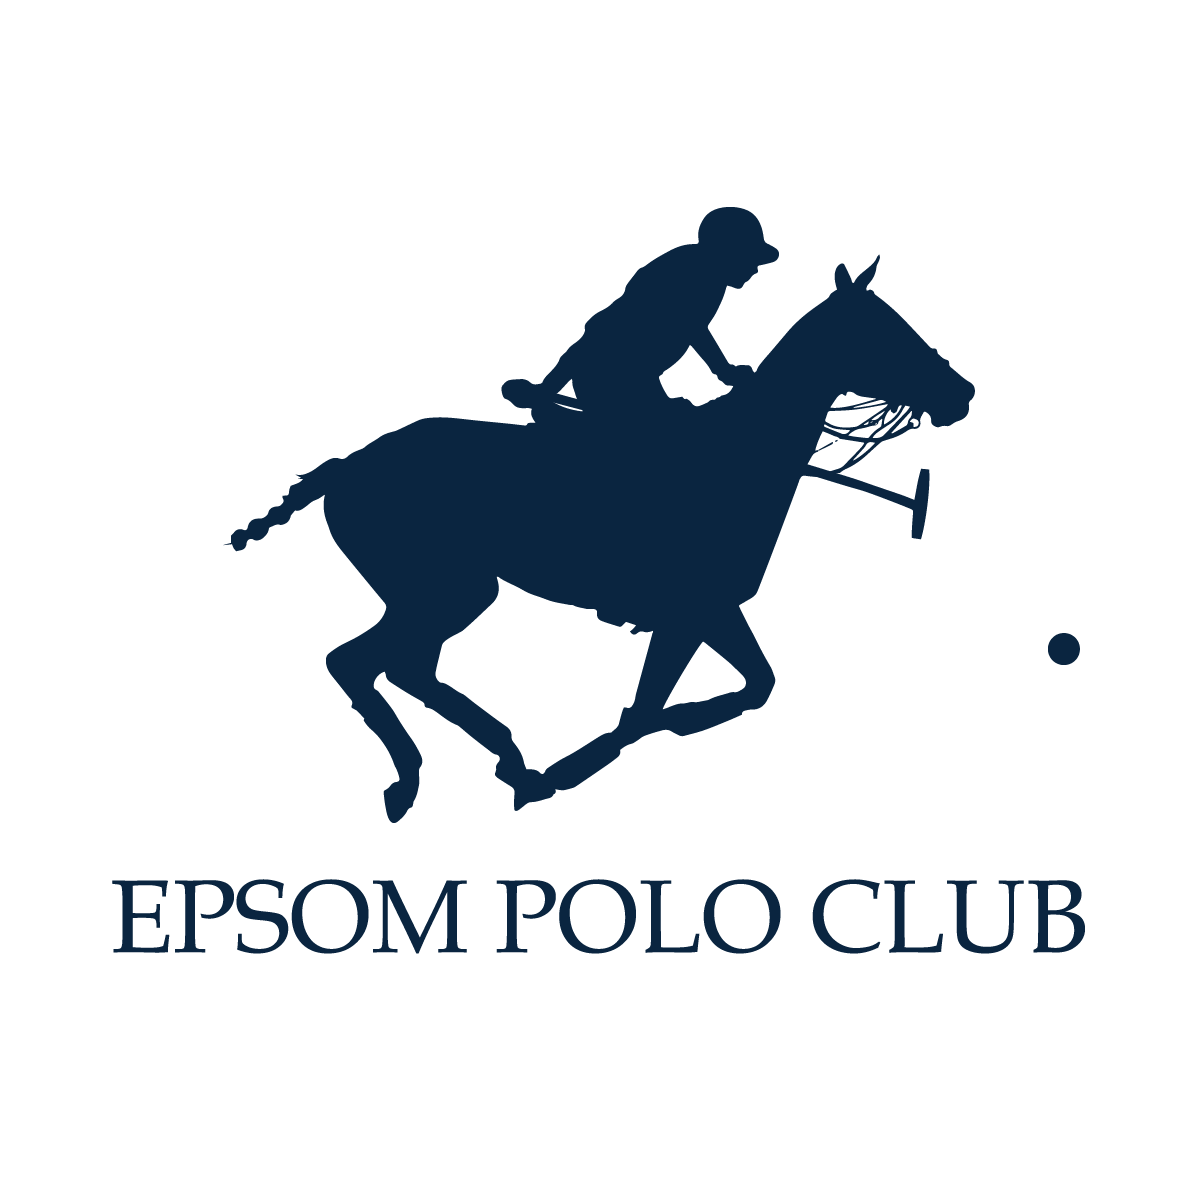 Epsom Polo Club